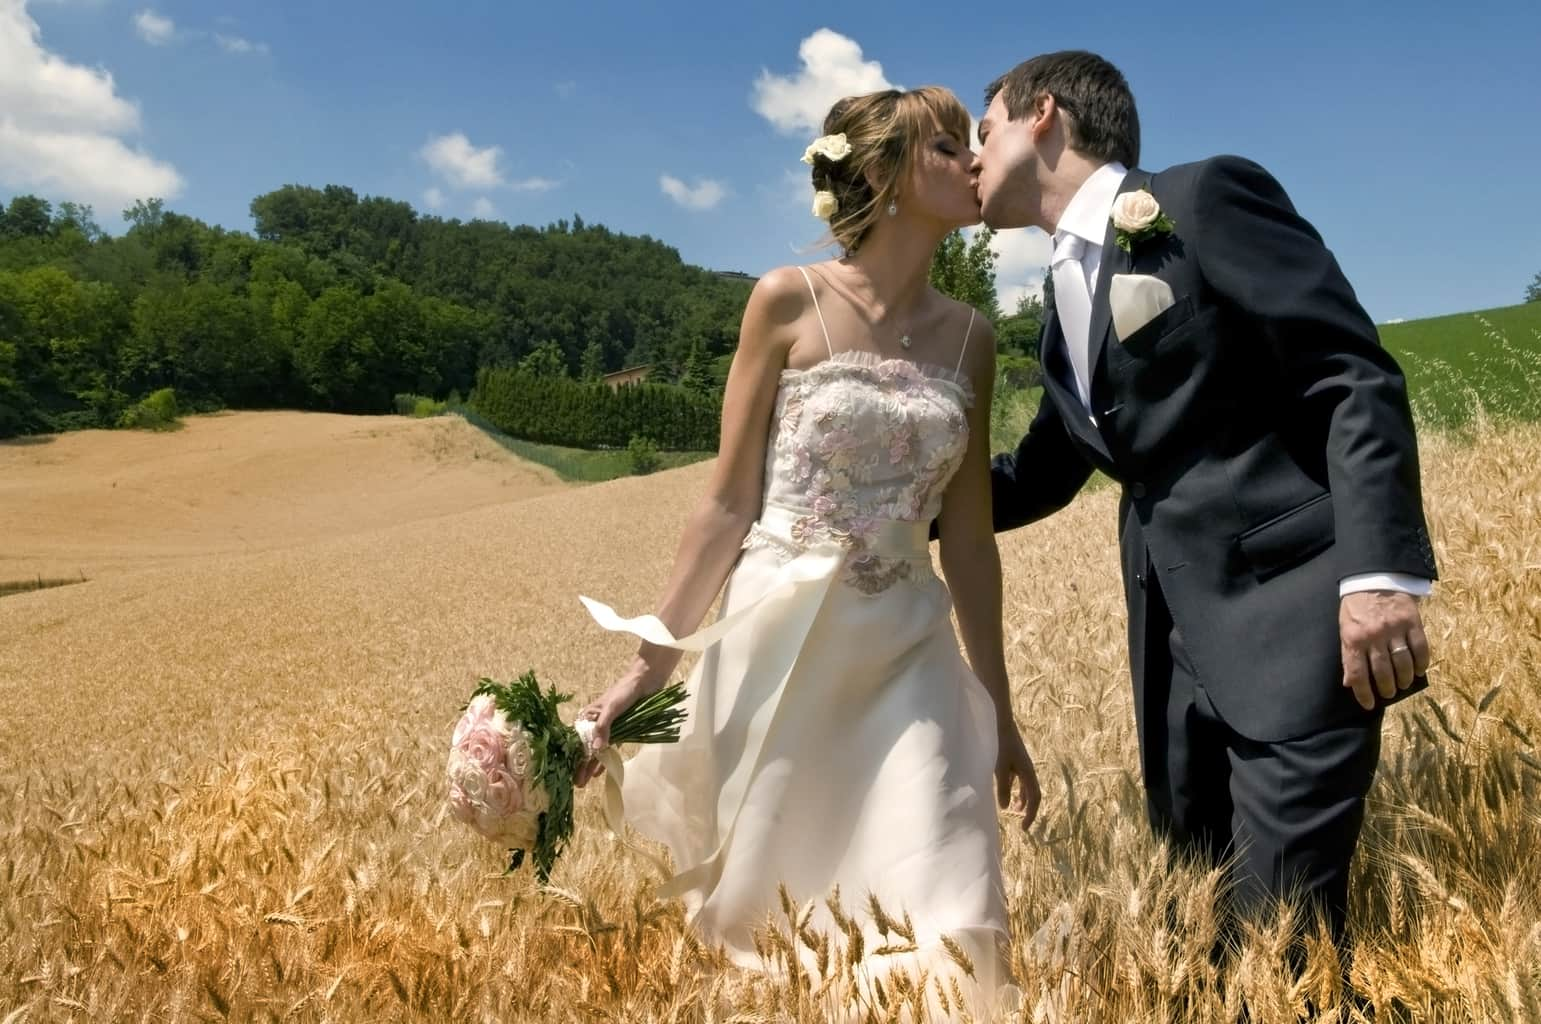 Is marriage good for a man's health?